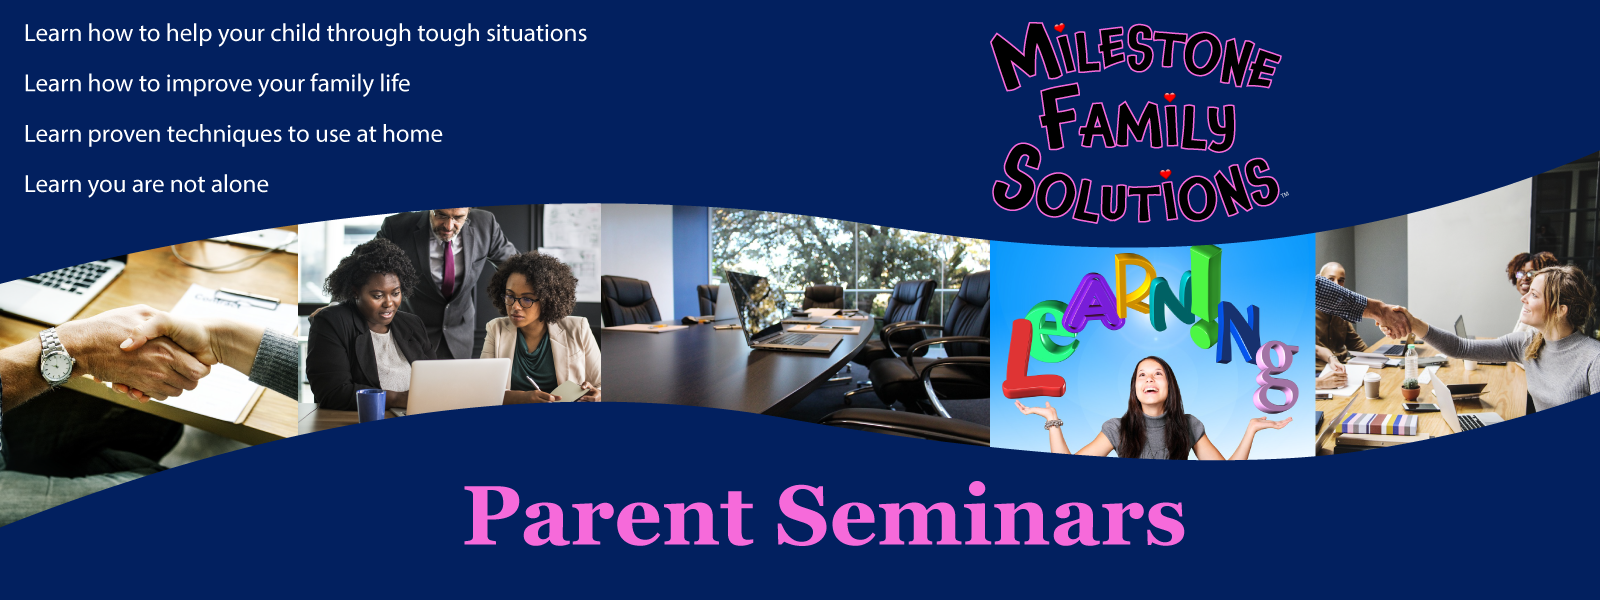 parent seminars header